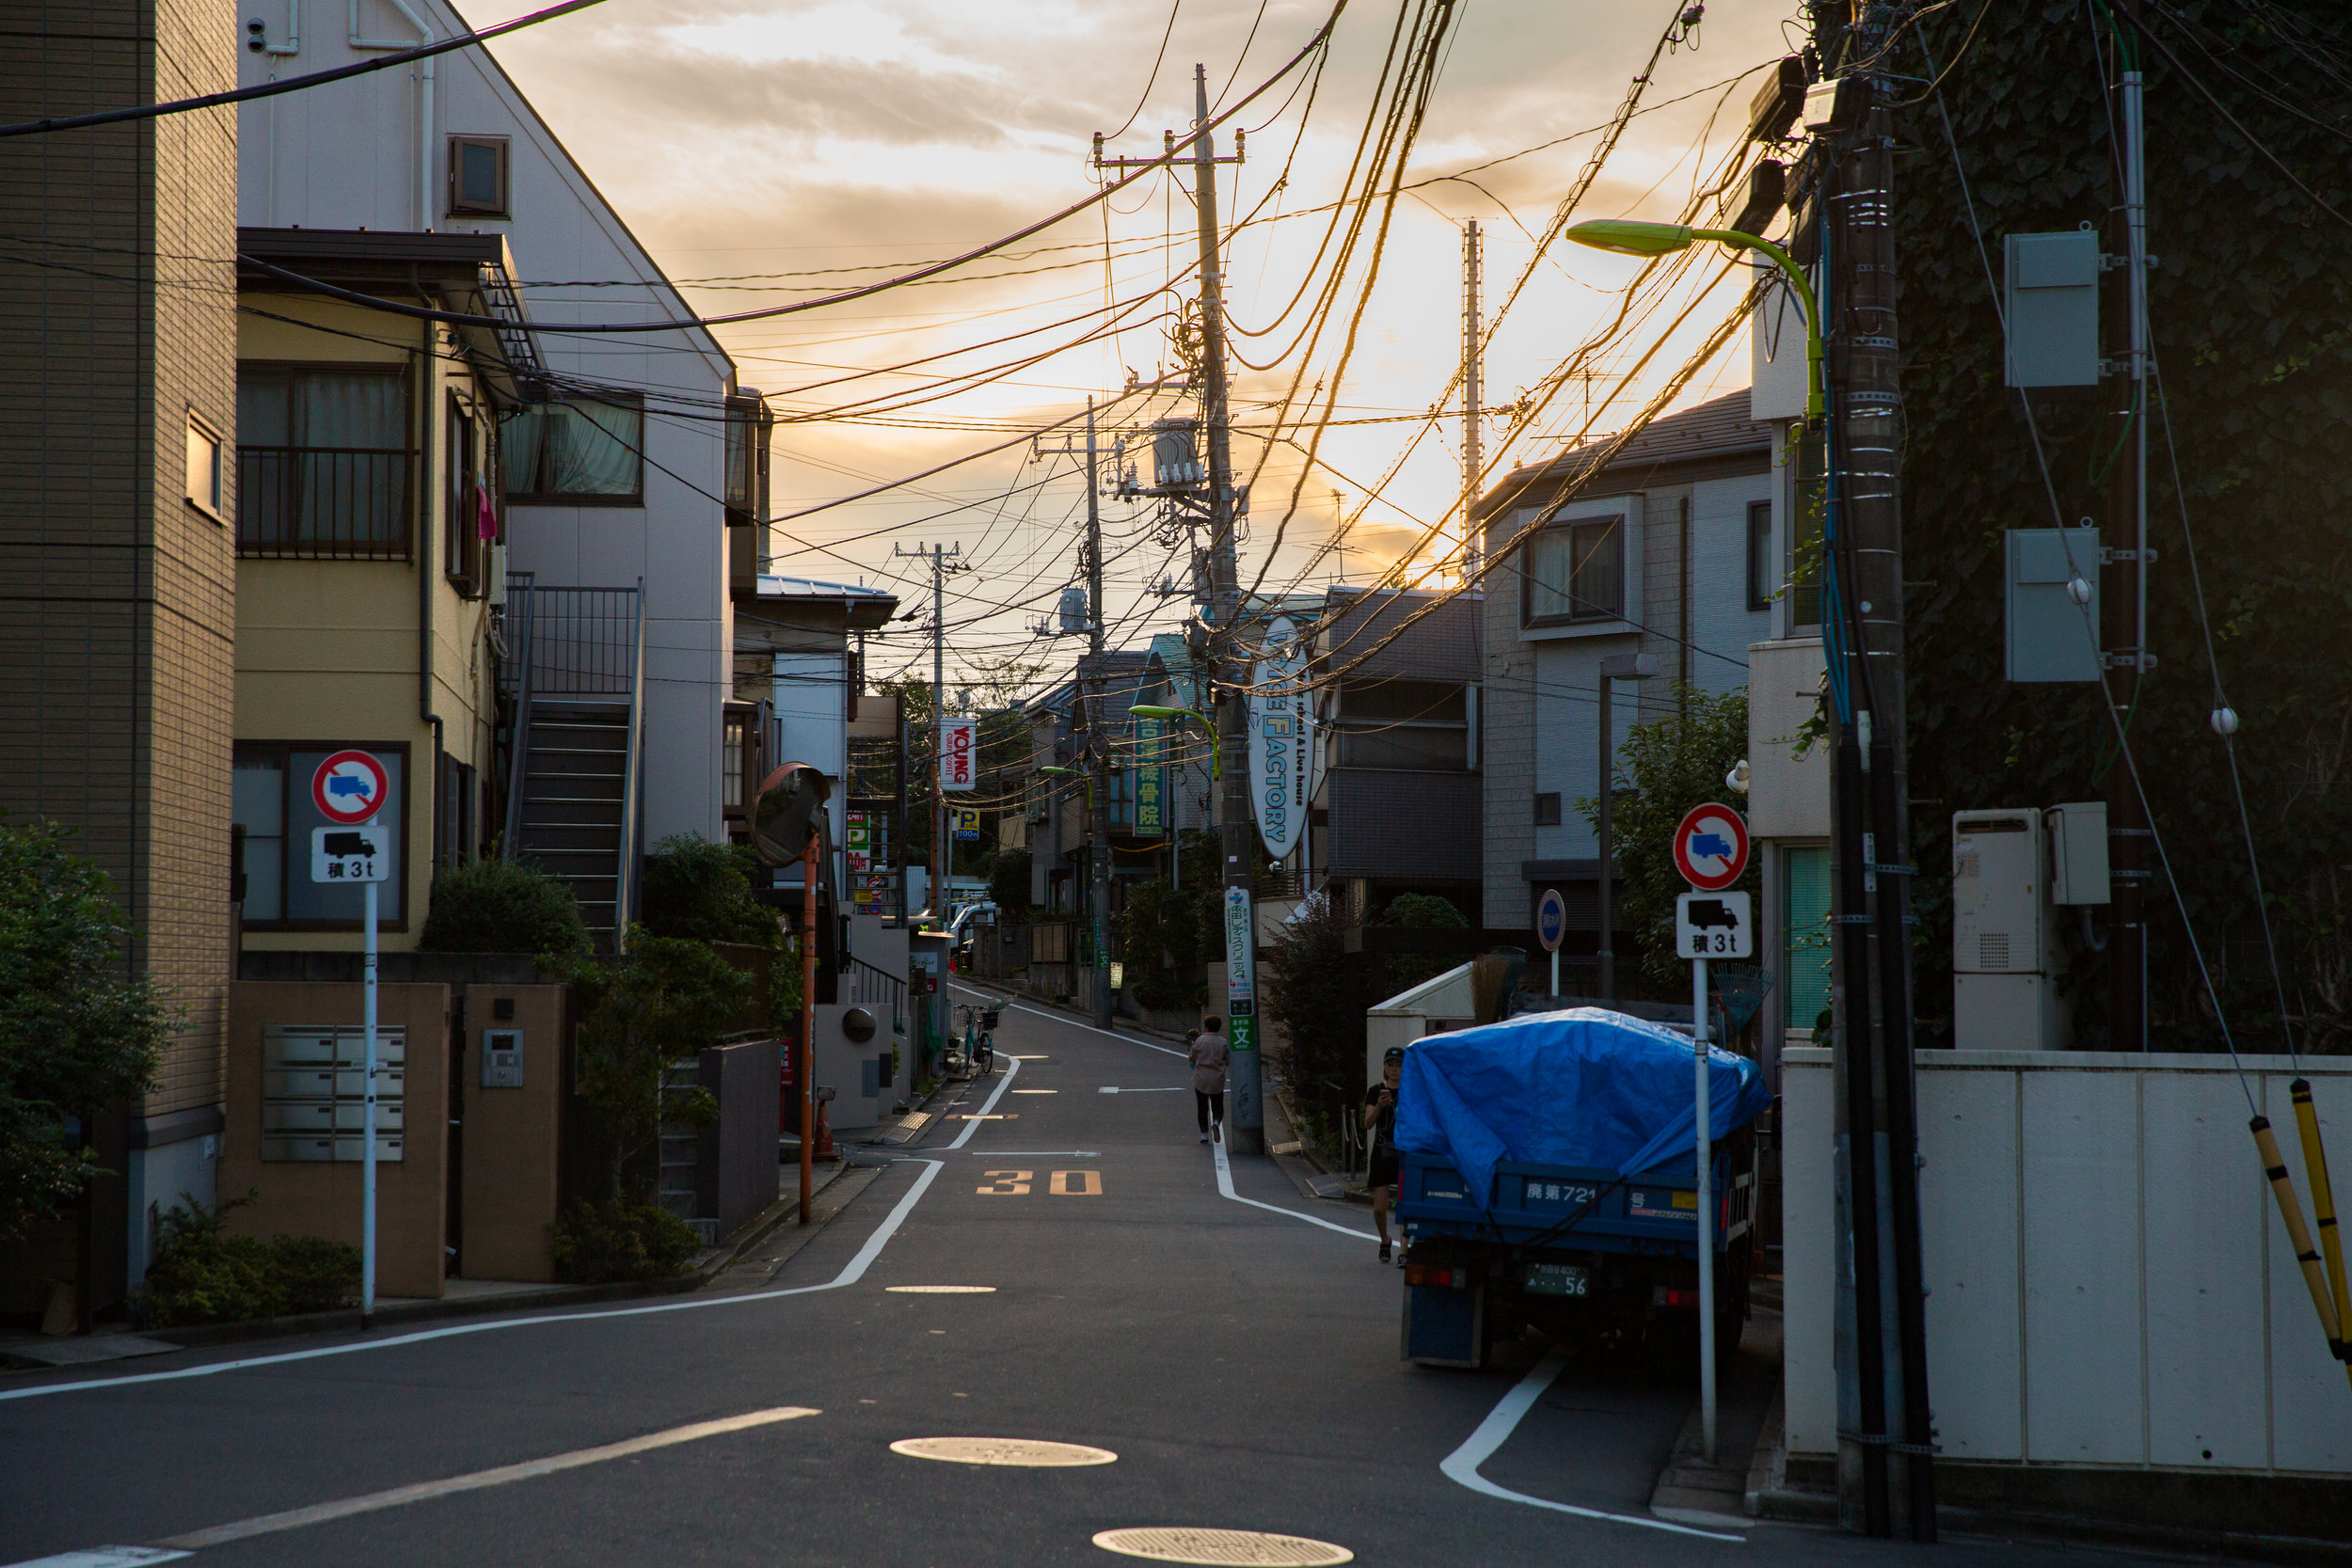 We can't remember exactly, but it was around here when we realized how familar this part of town looked. Finally we realized, after decades in the United States watching anime, that the cities you see in daily life anime were not fictional, but instead gorgeous pathways among quiet neighborhoods.